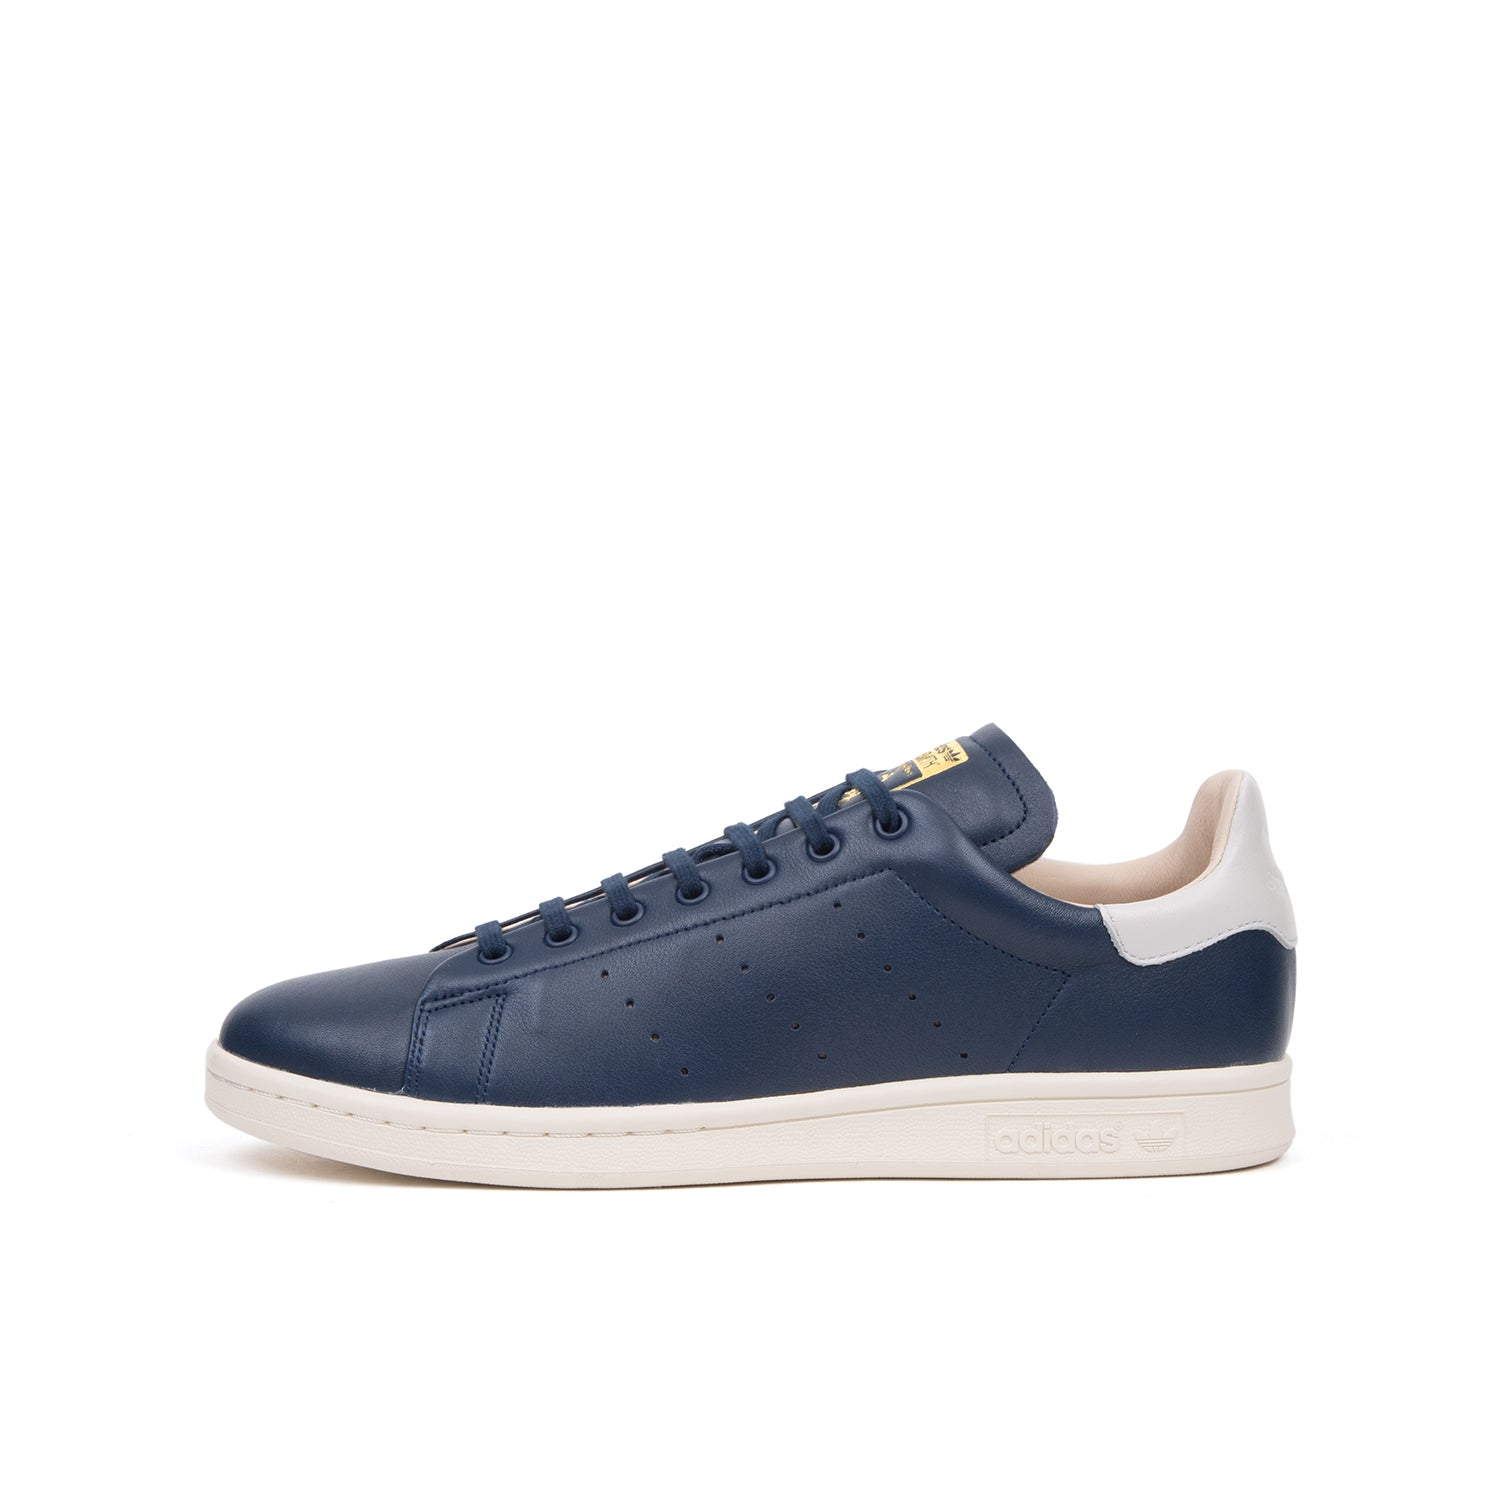 adidas Originals Stan Smith Recon Collegiate Navy